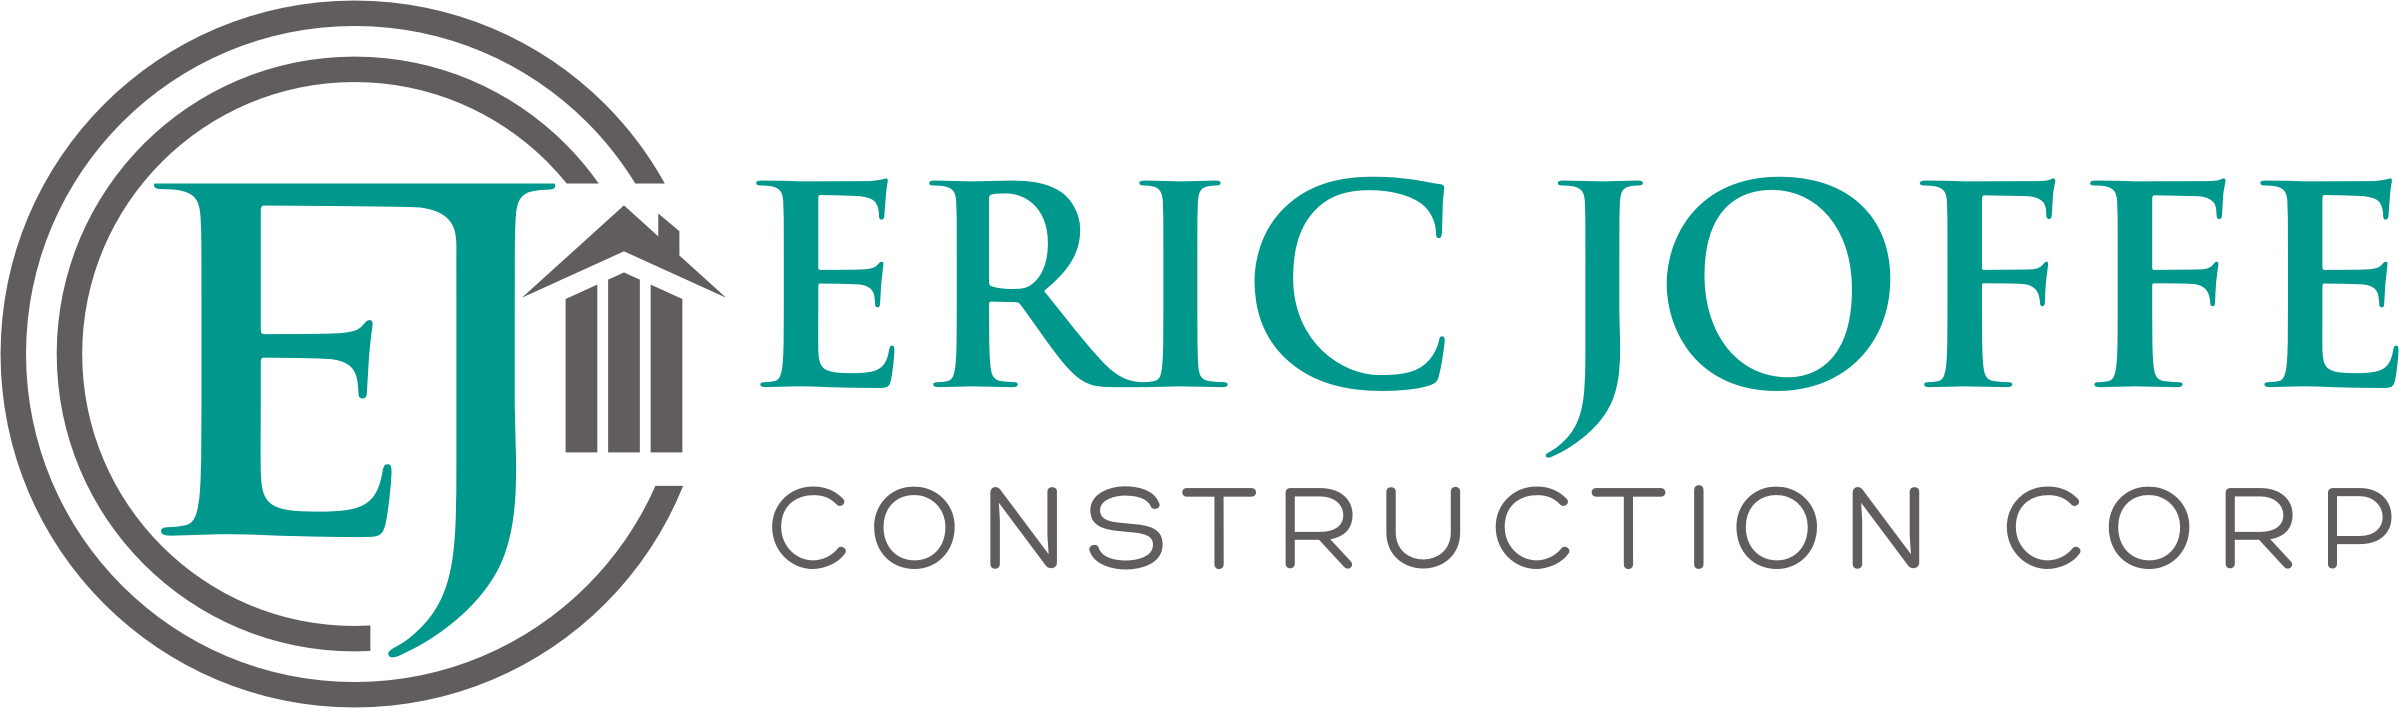 Eric Joffe Construction Corp